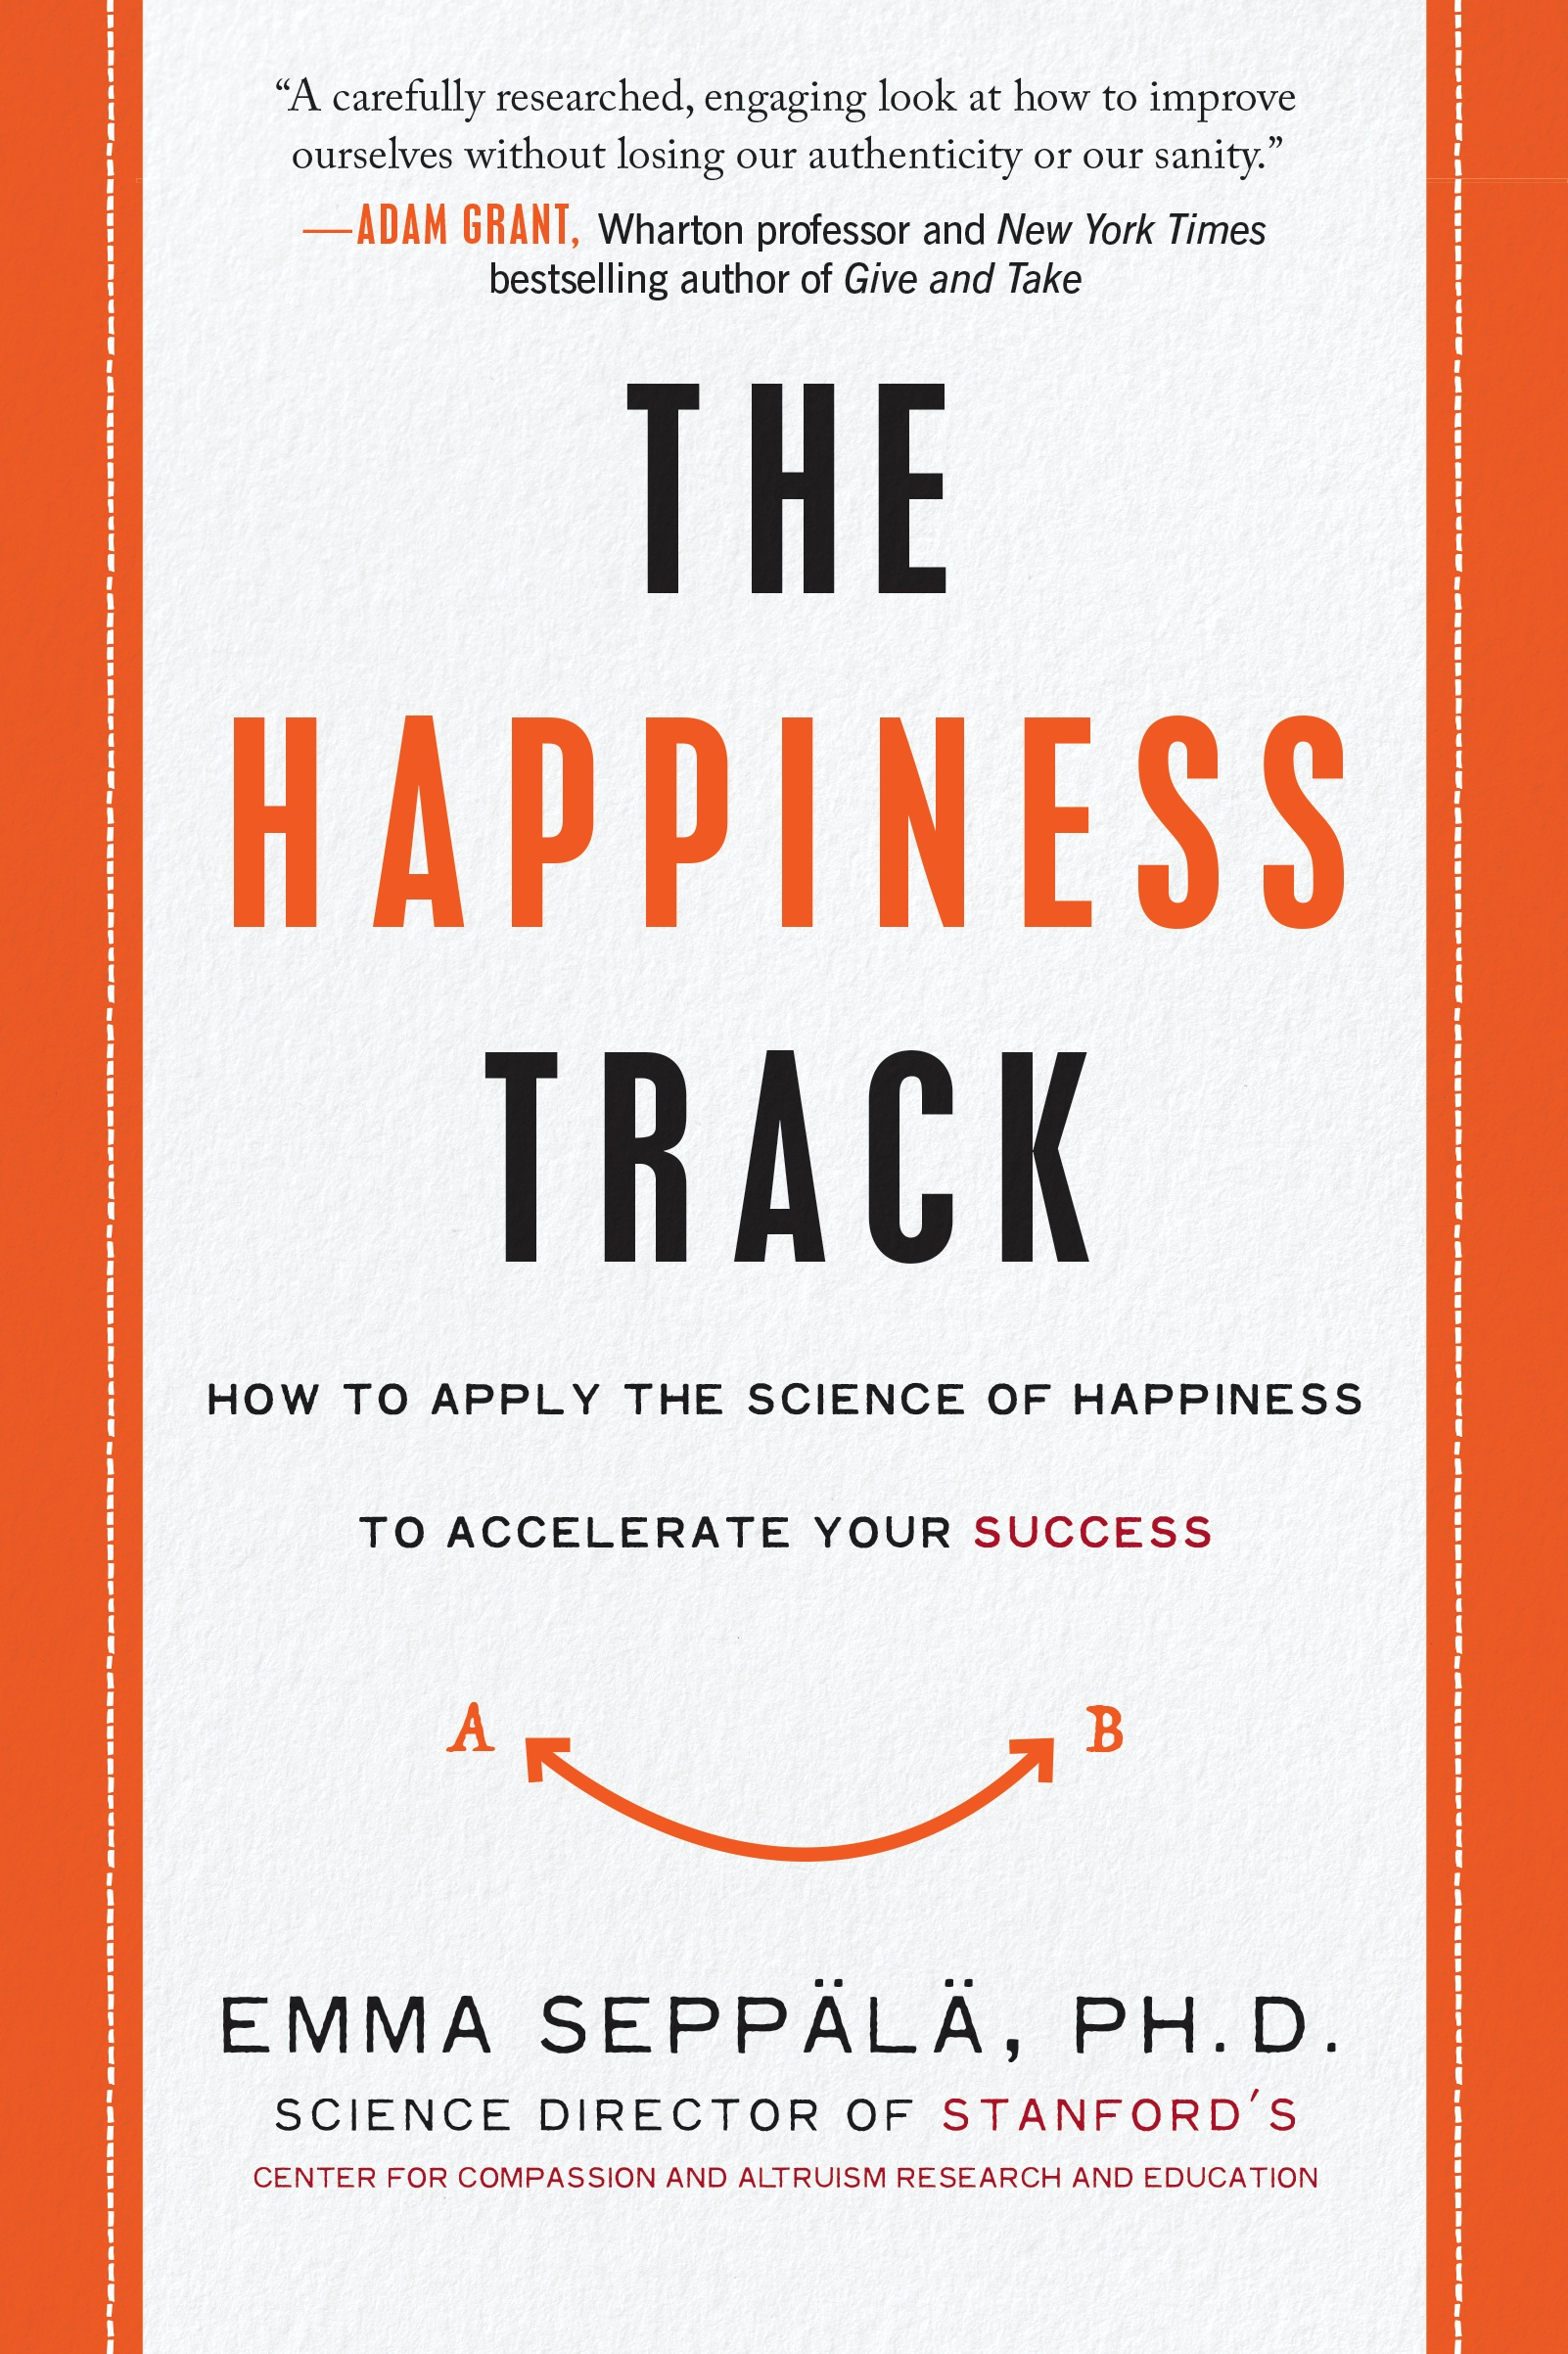 10 Books to Seriously Boost Your Happiness in 2019 | Psychology